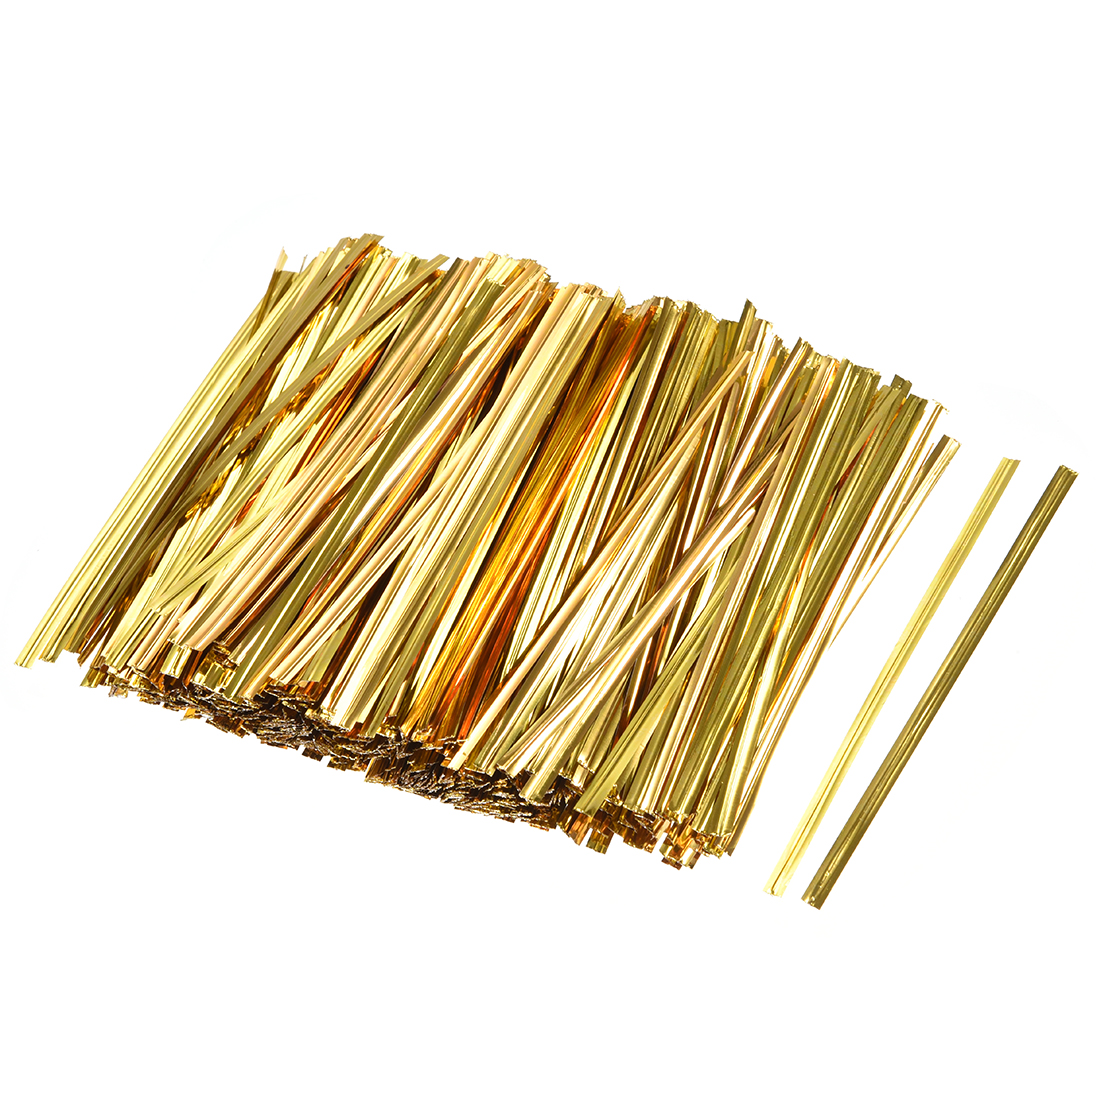 Long Strong Twist Ties 3.15 Inches Quality Plastic Closure Tie Golden 1000pcs